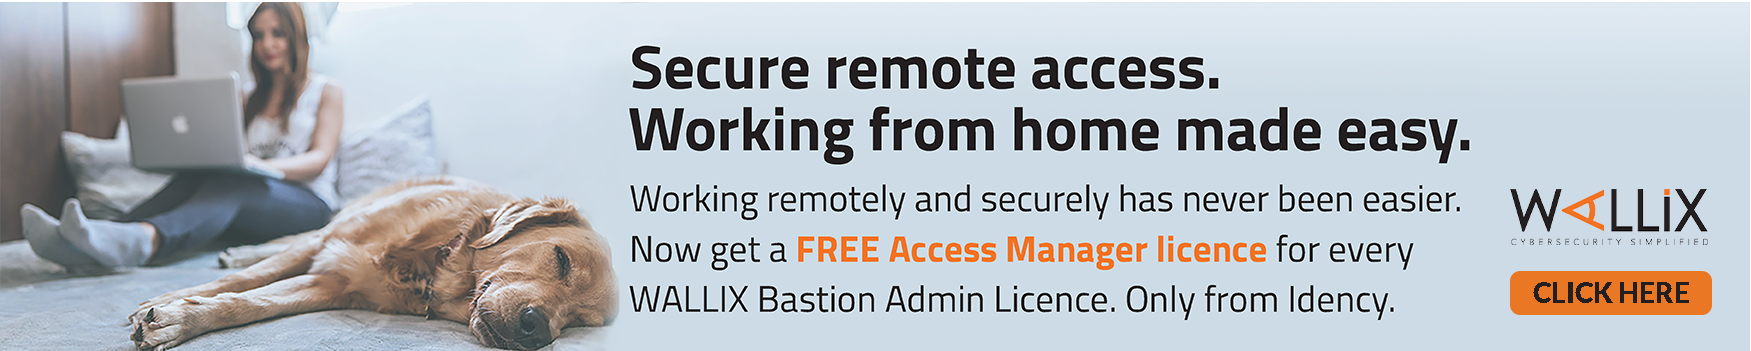 WALLIX remote access offer banner